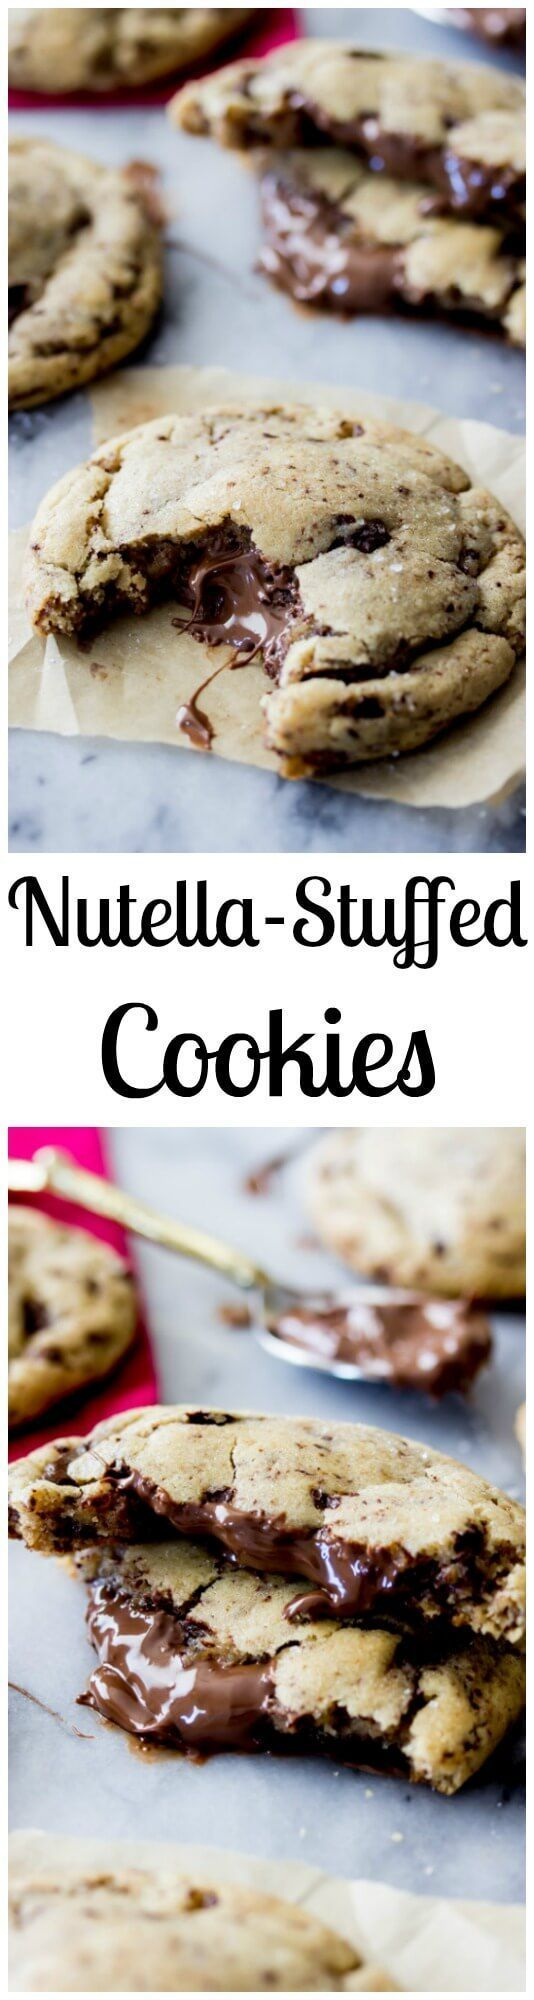 Stuffed Cookies - made with brown butter and sprinkled with sea salt! || Sugar Spun Run via /sugarspunrun/